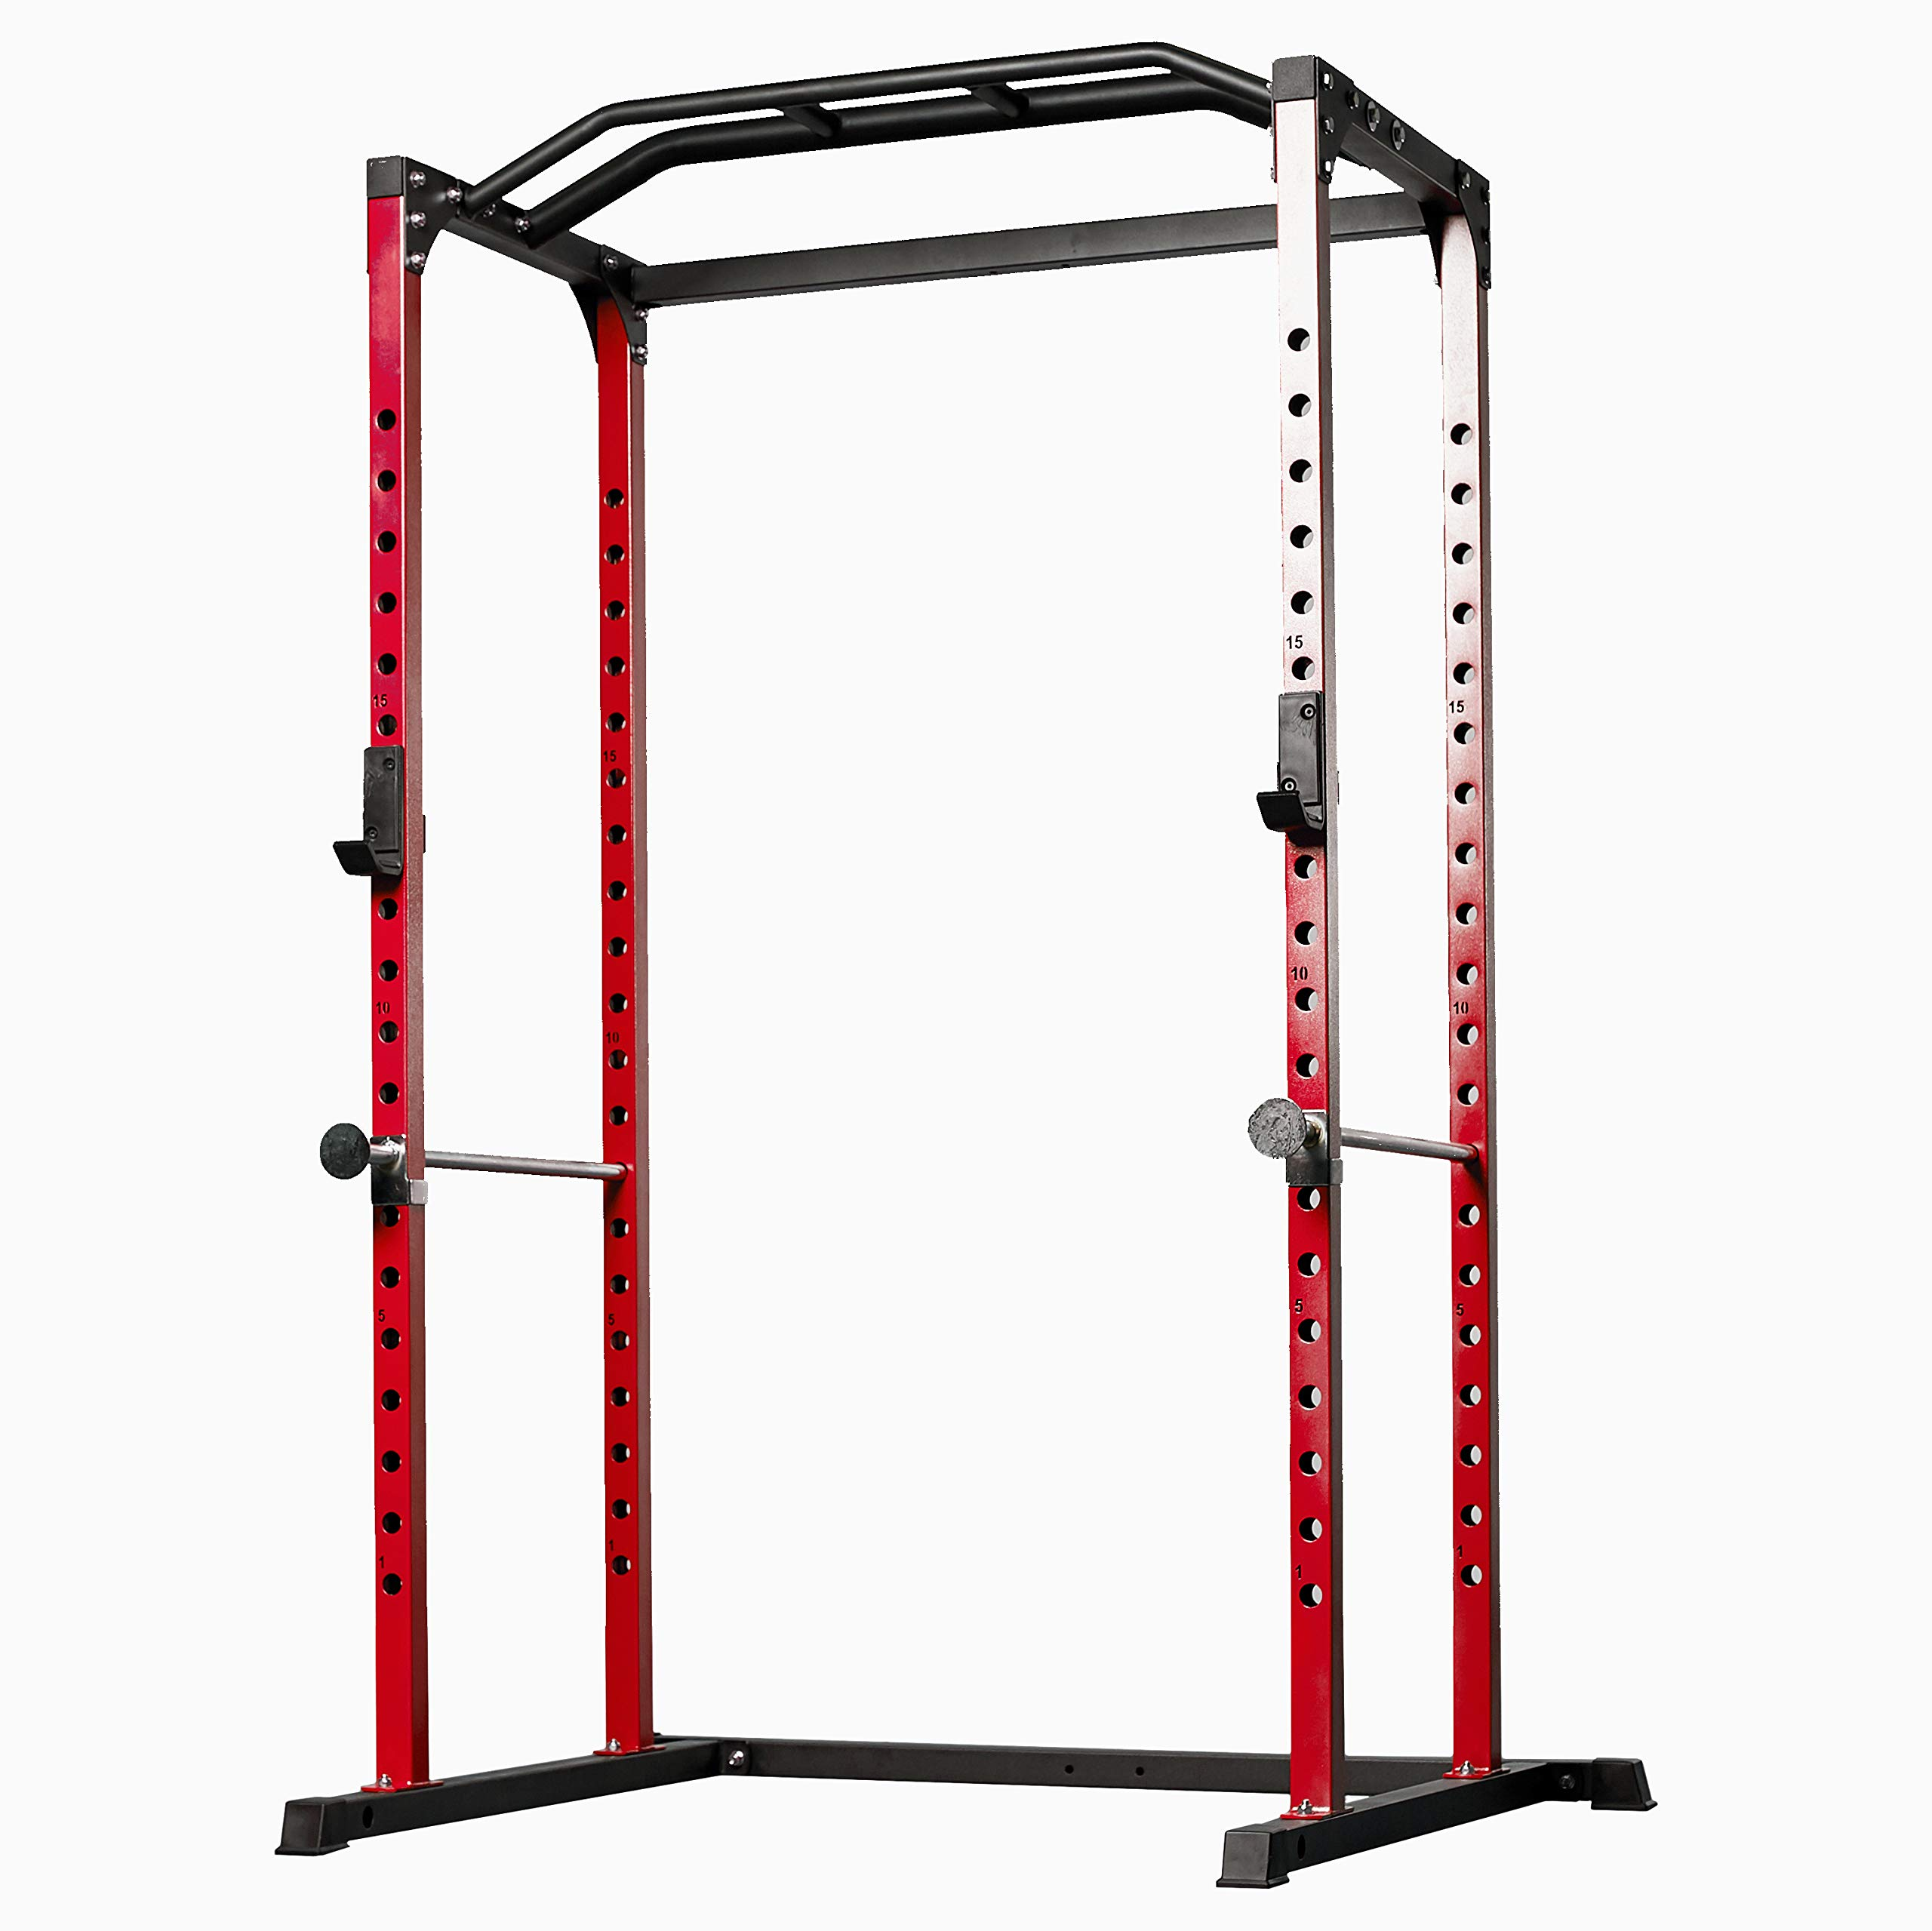 Rep PR-1100 Power Rack - 1,000 lbs Rated Lifting Cage for Weight Training (Red Power Rack, No Bench) by Rep Fitness (Image #1)